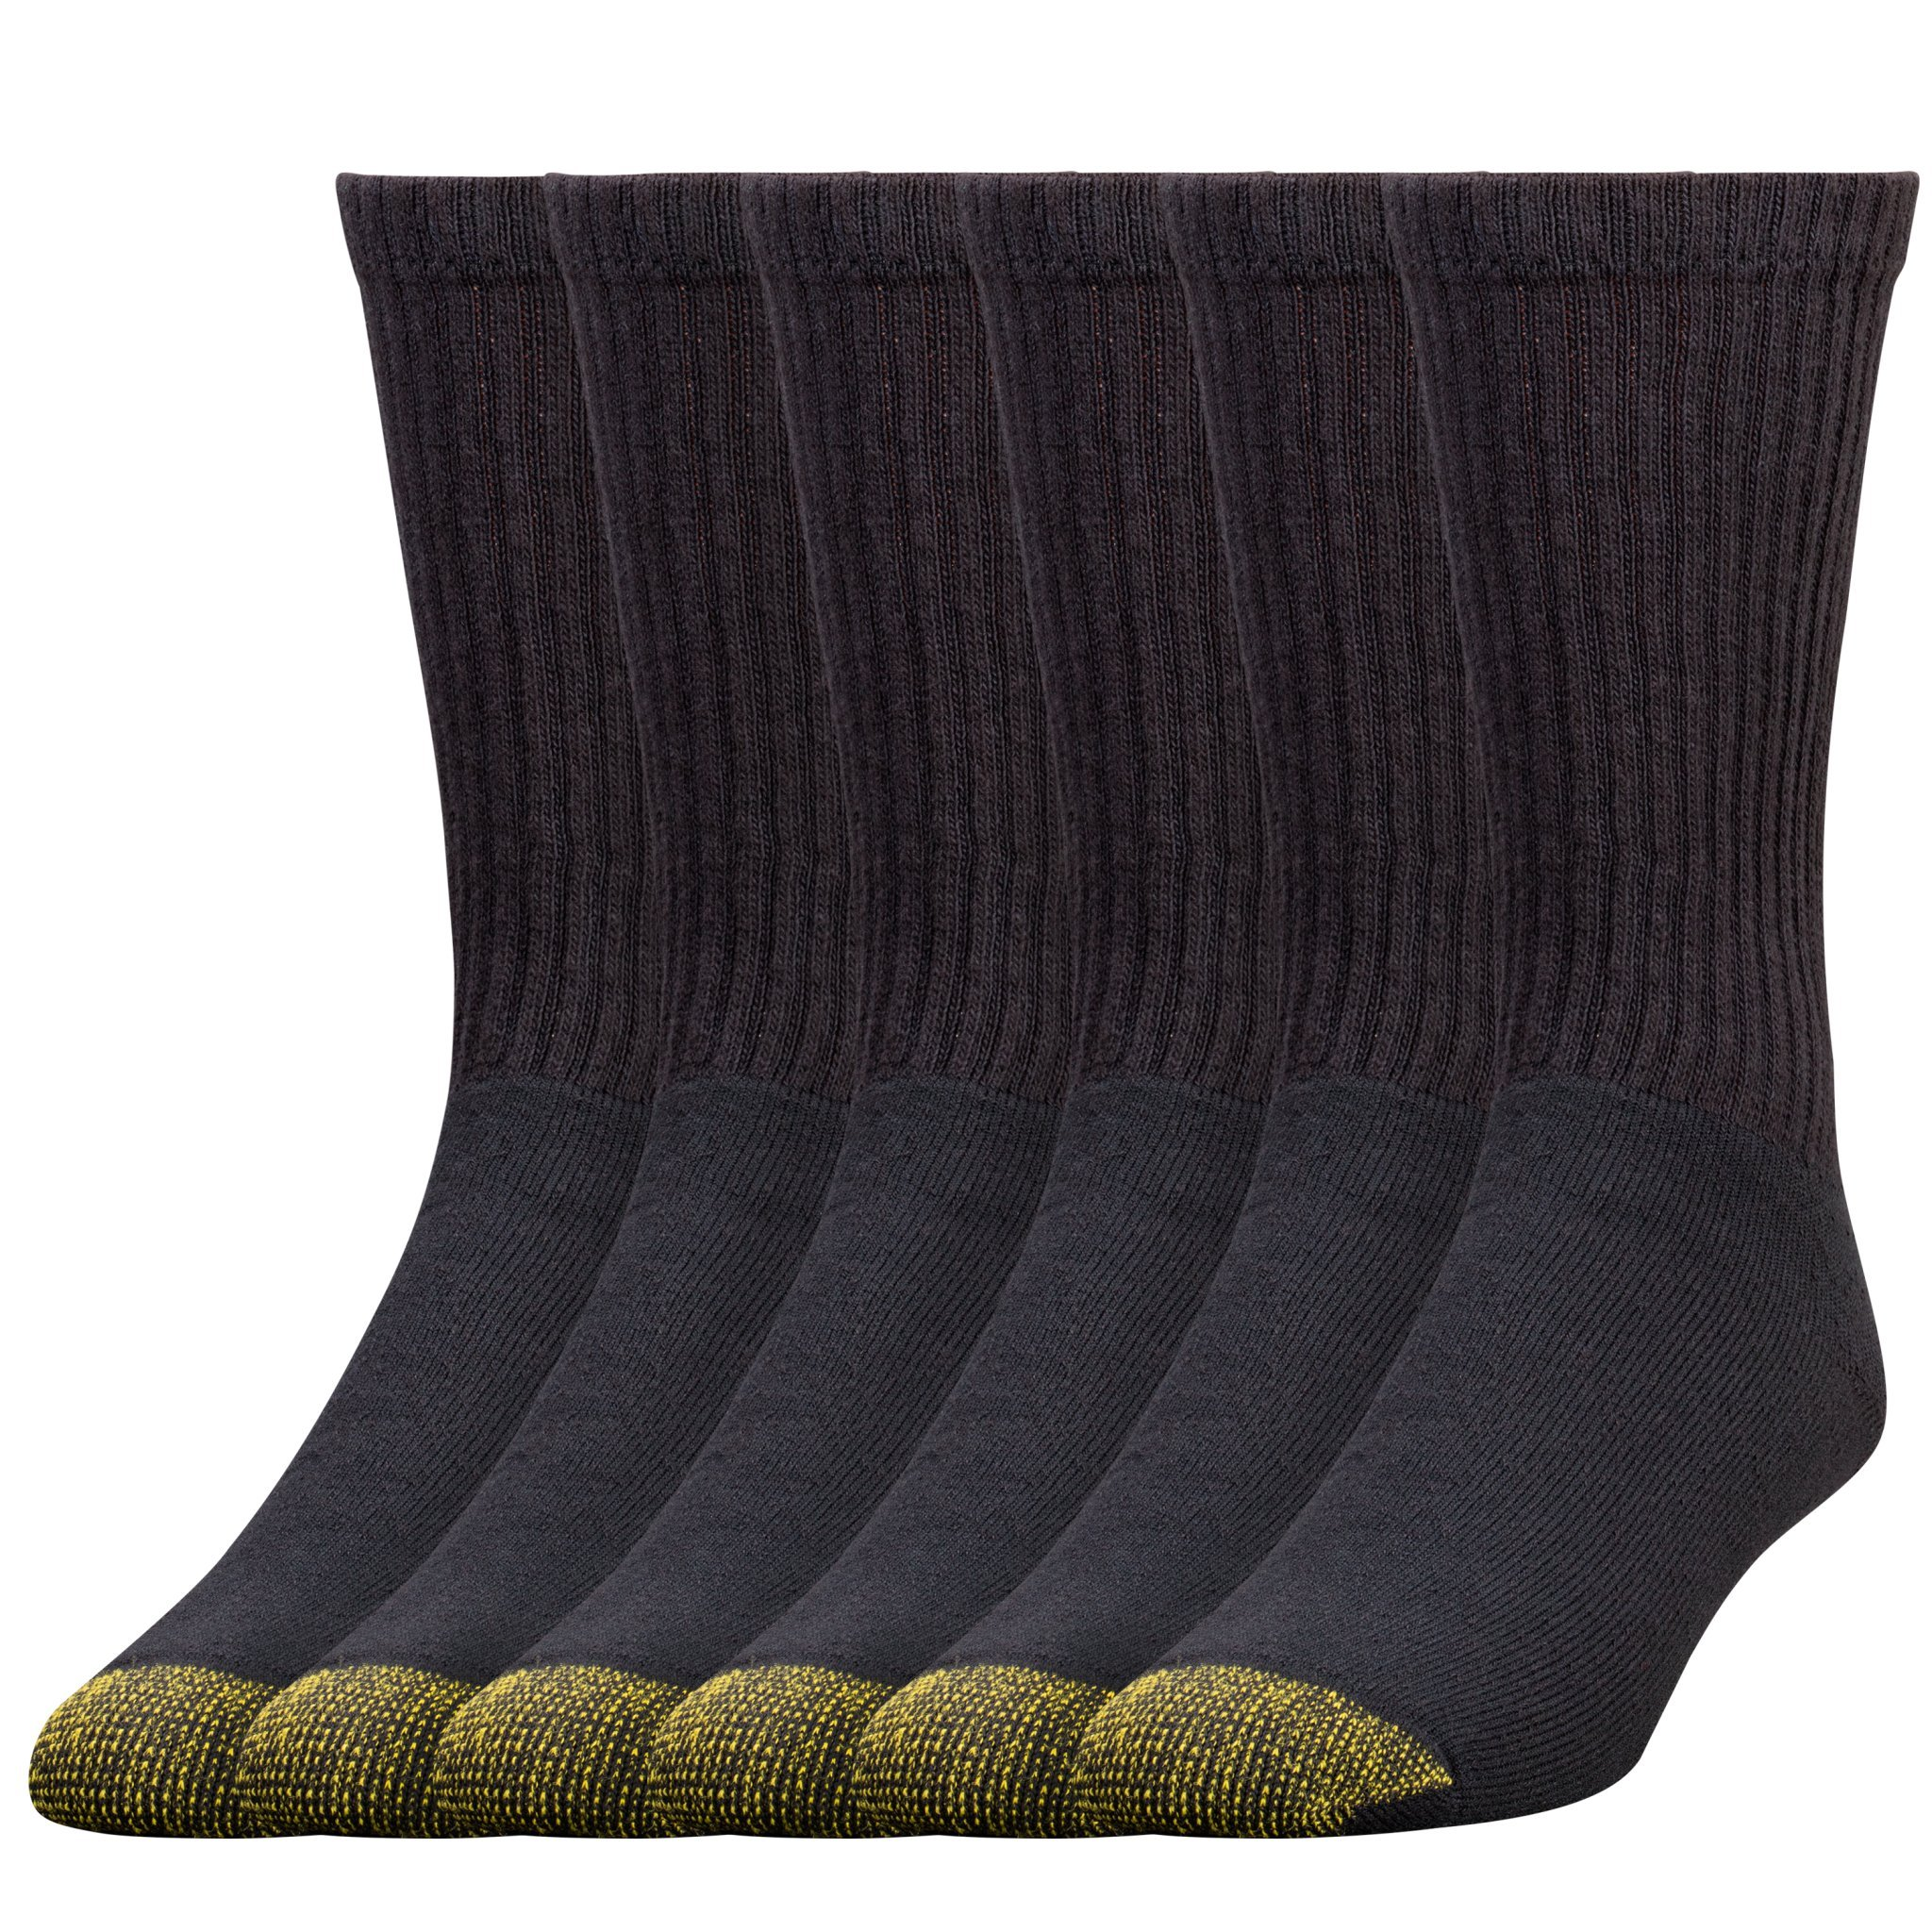 Gold Toe Men's 6-Pack Cotton Crew Athletic Sock, Black, 13-15 (Shoe Size 12-16)